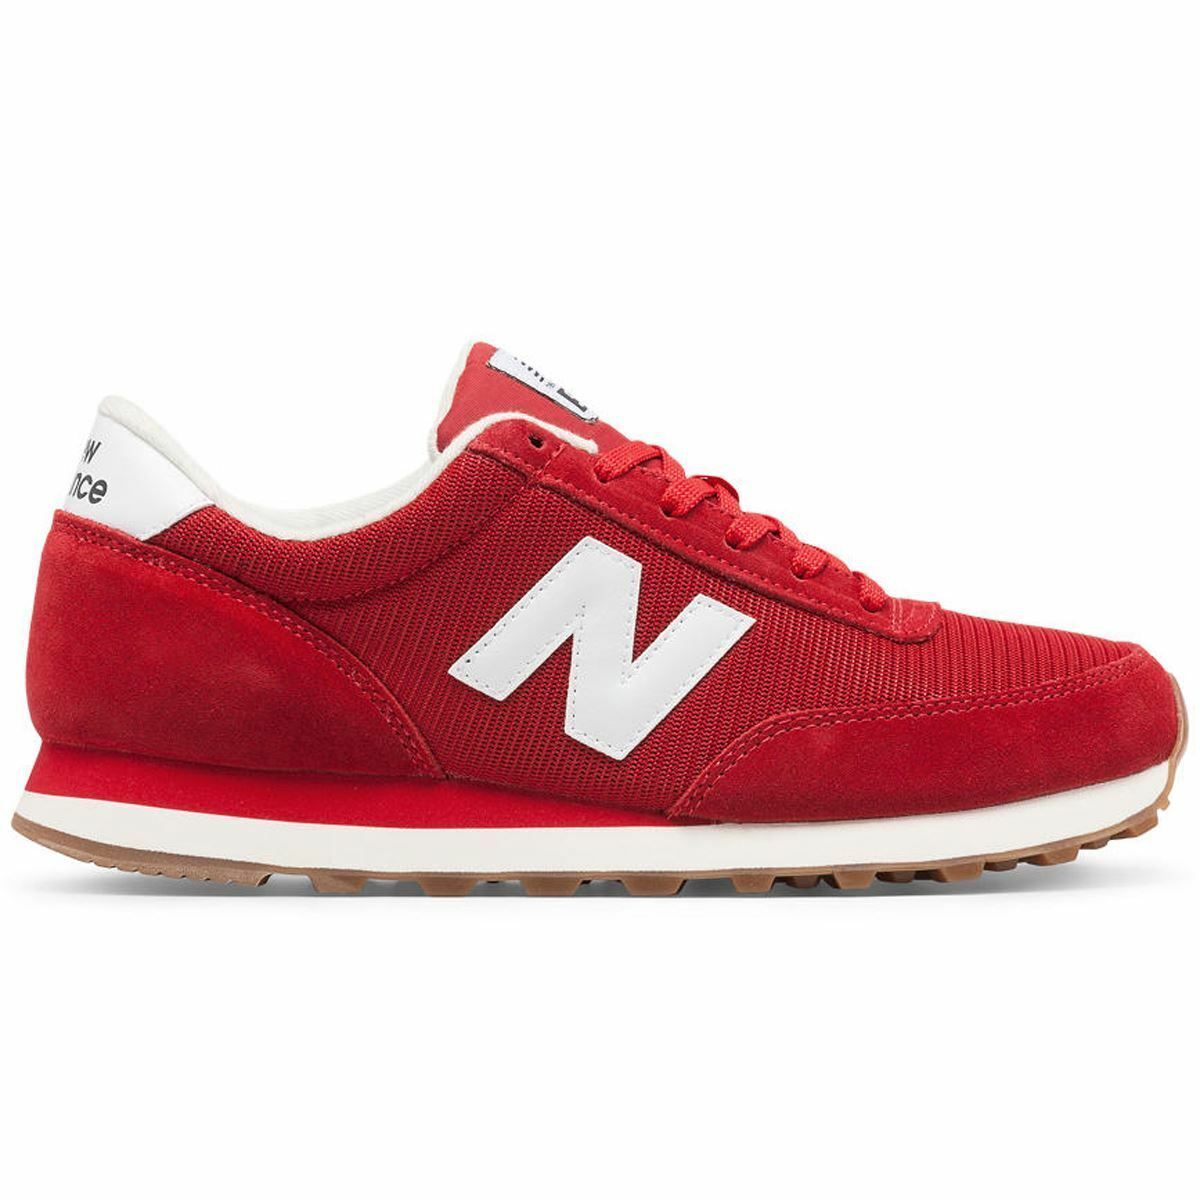 New Balance White 501 Running Classics Red White Balance Mens Trainers 7a72dd